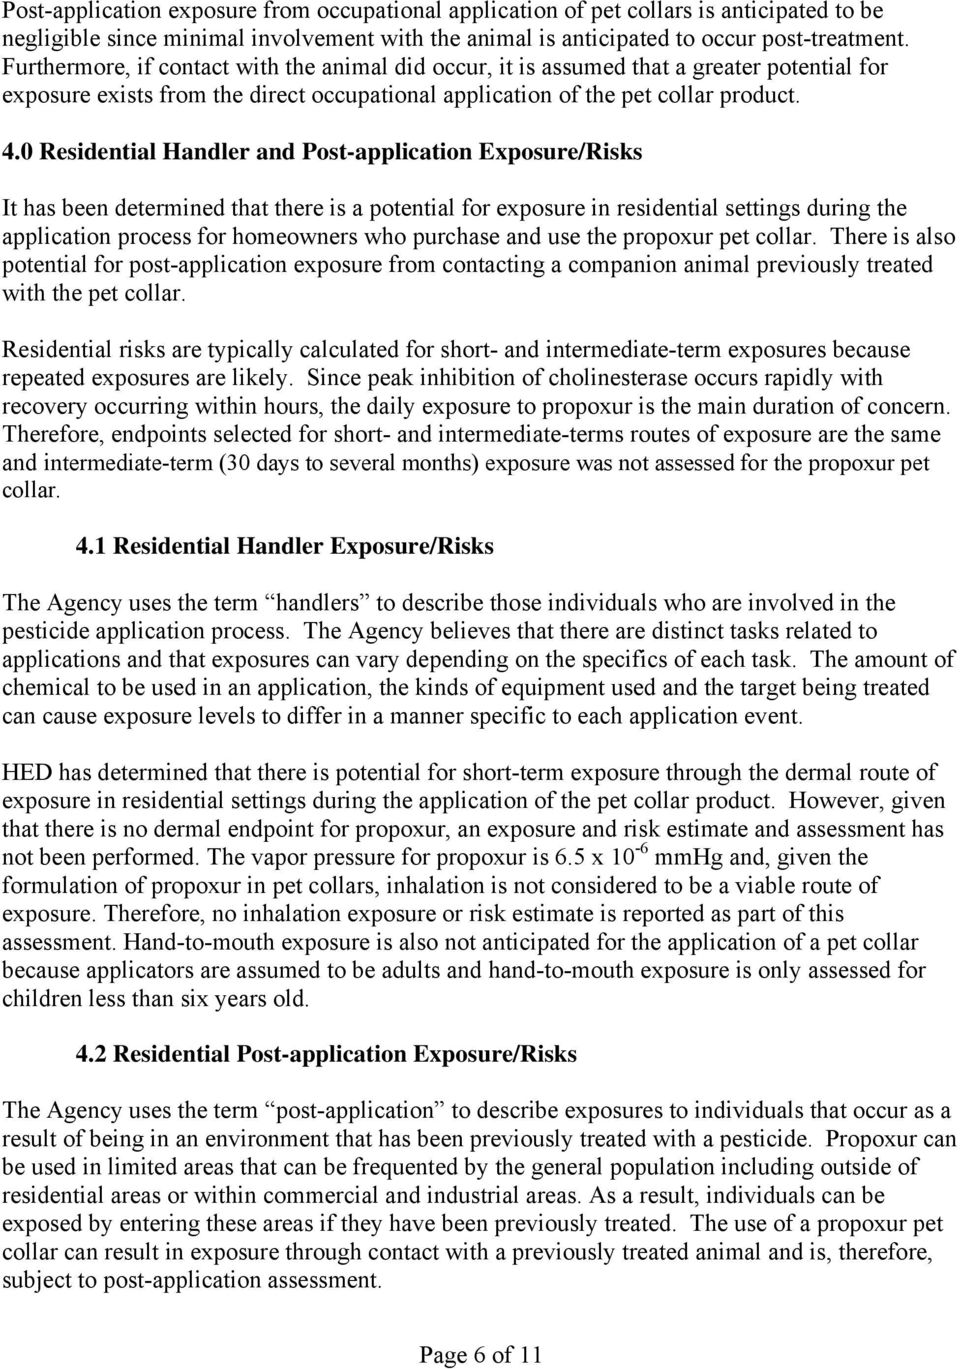 0 Residential Handler and Post-application Exposure/Risks It has been determined that there is a potential for exposure in residential settings during the application process for homeowners who